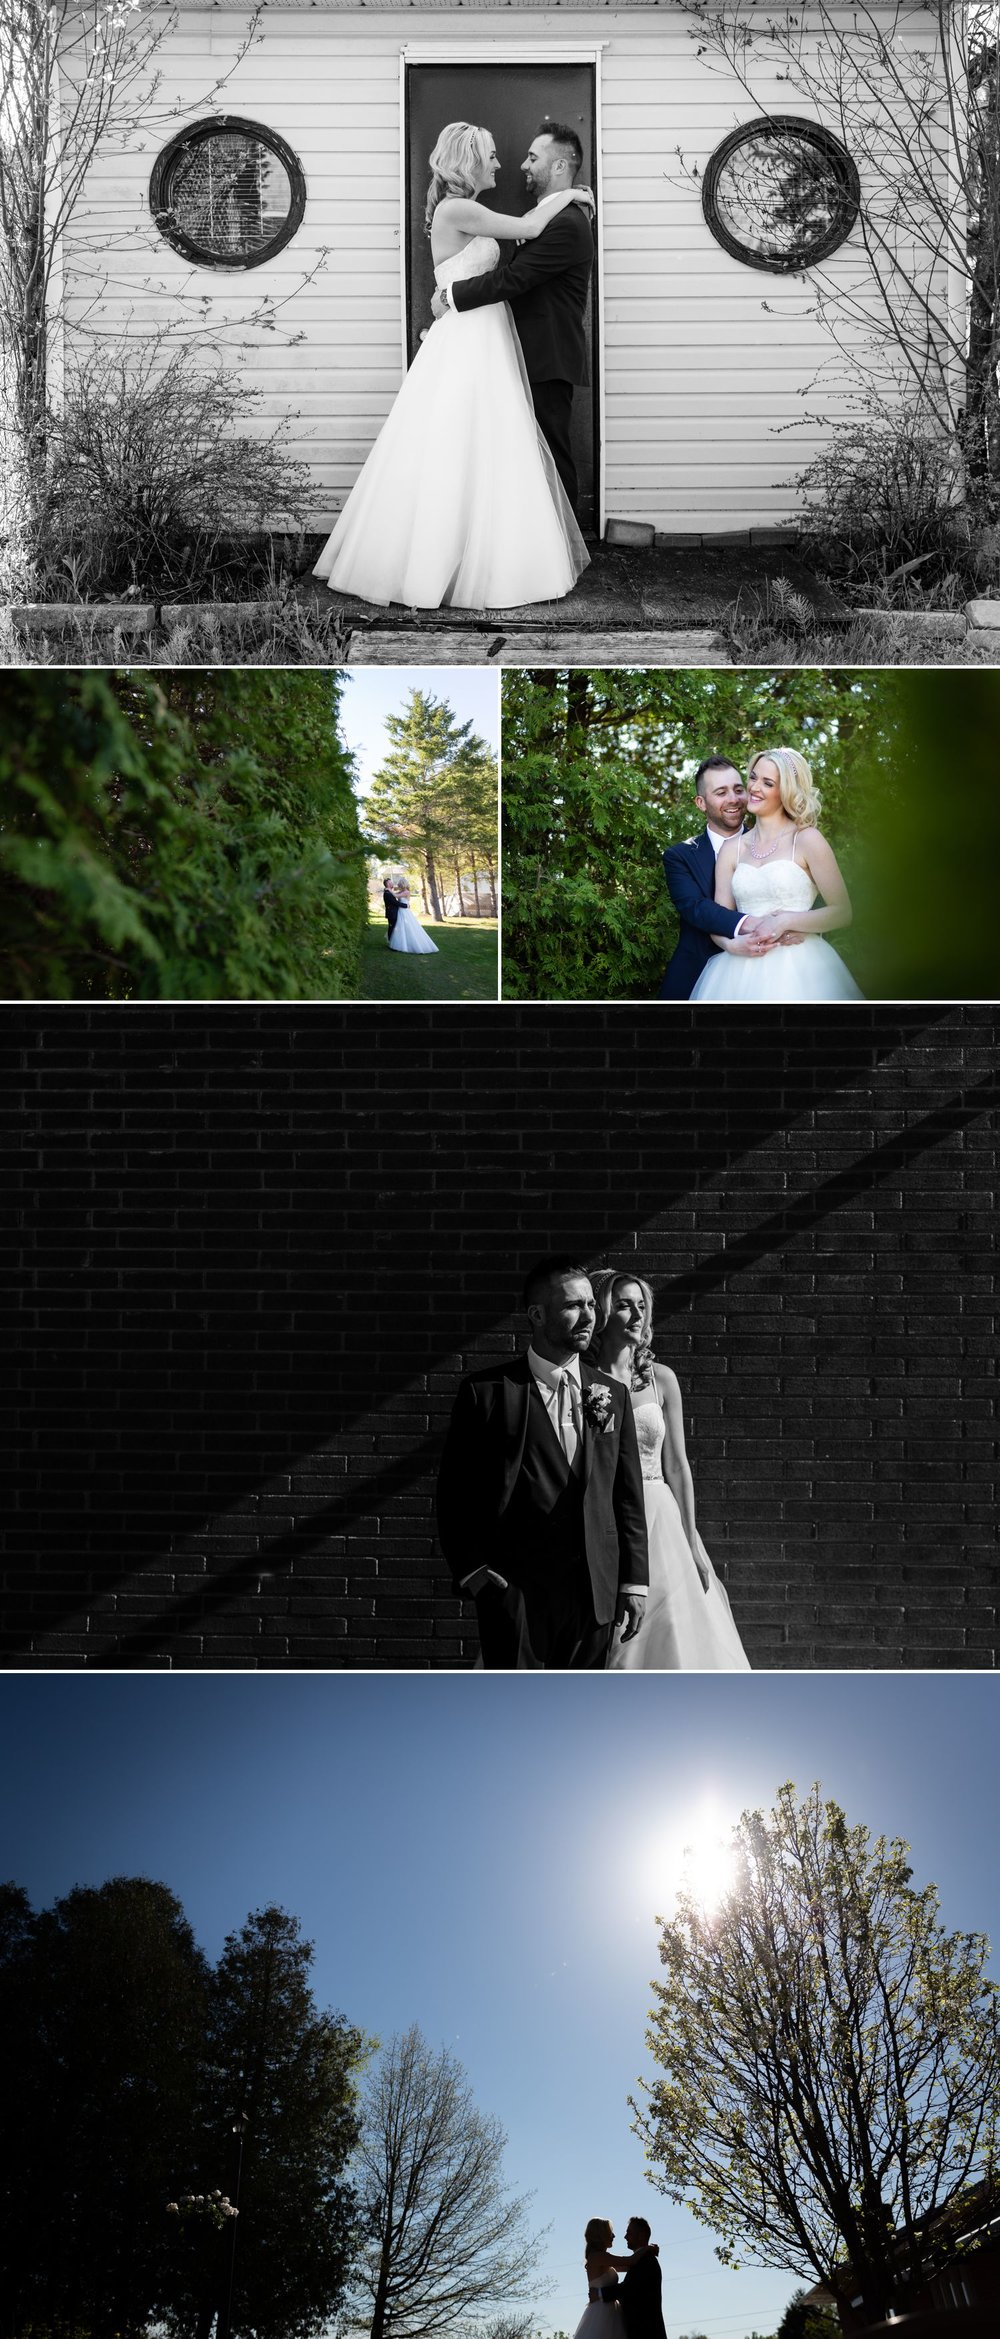 Portraits of the bride and groom after their wedding ceremony at Orchard View Wedding and Conference Centre